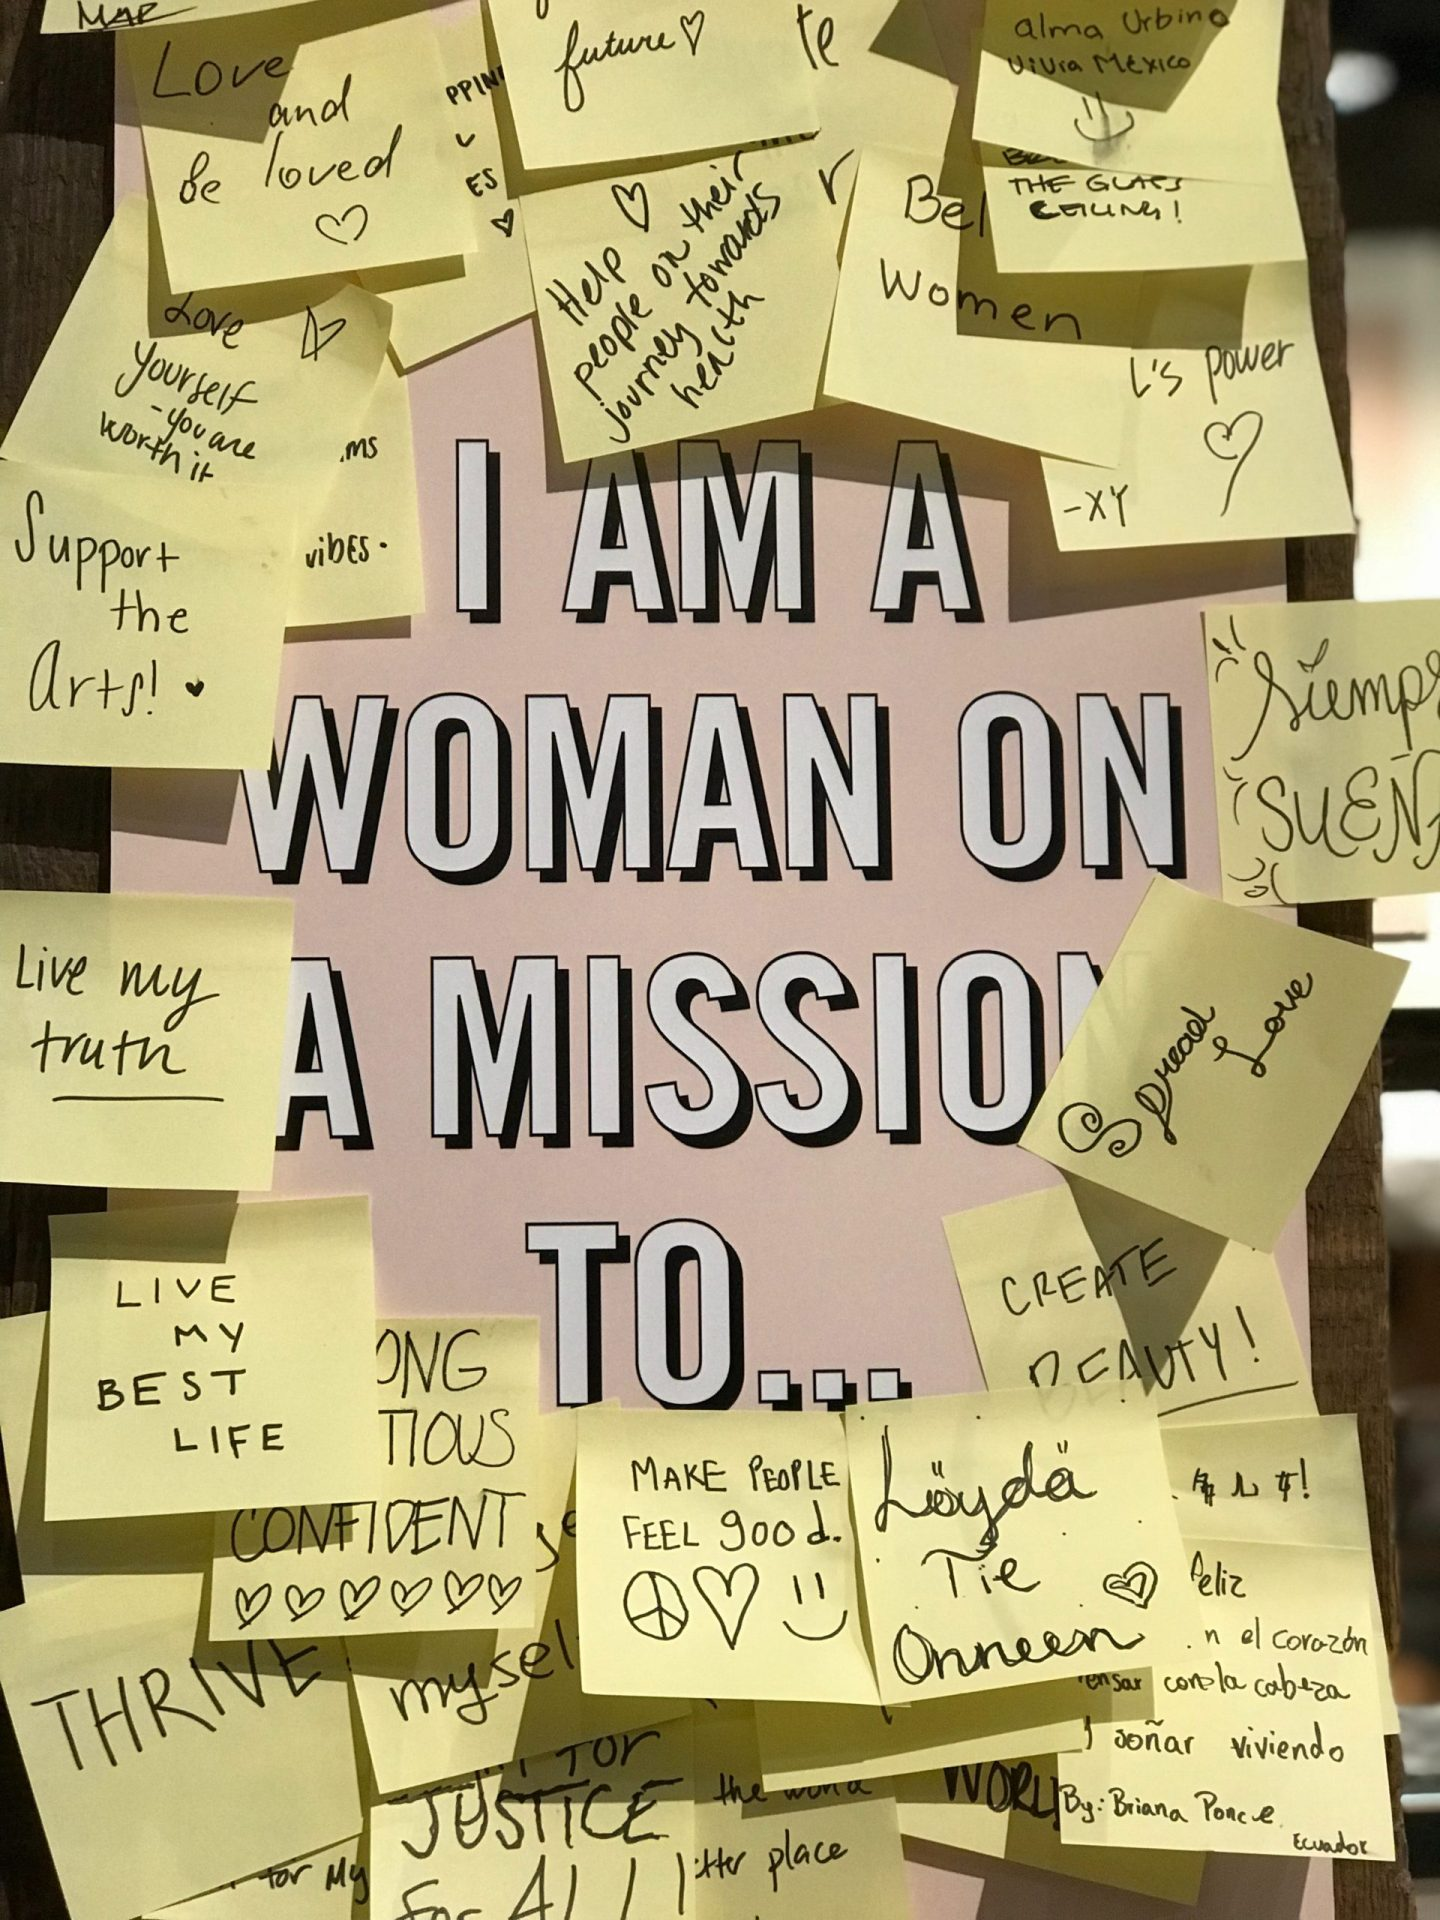 Graphic showing showing I am a woman on a mission